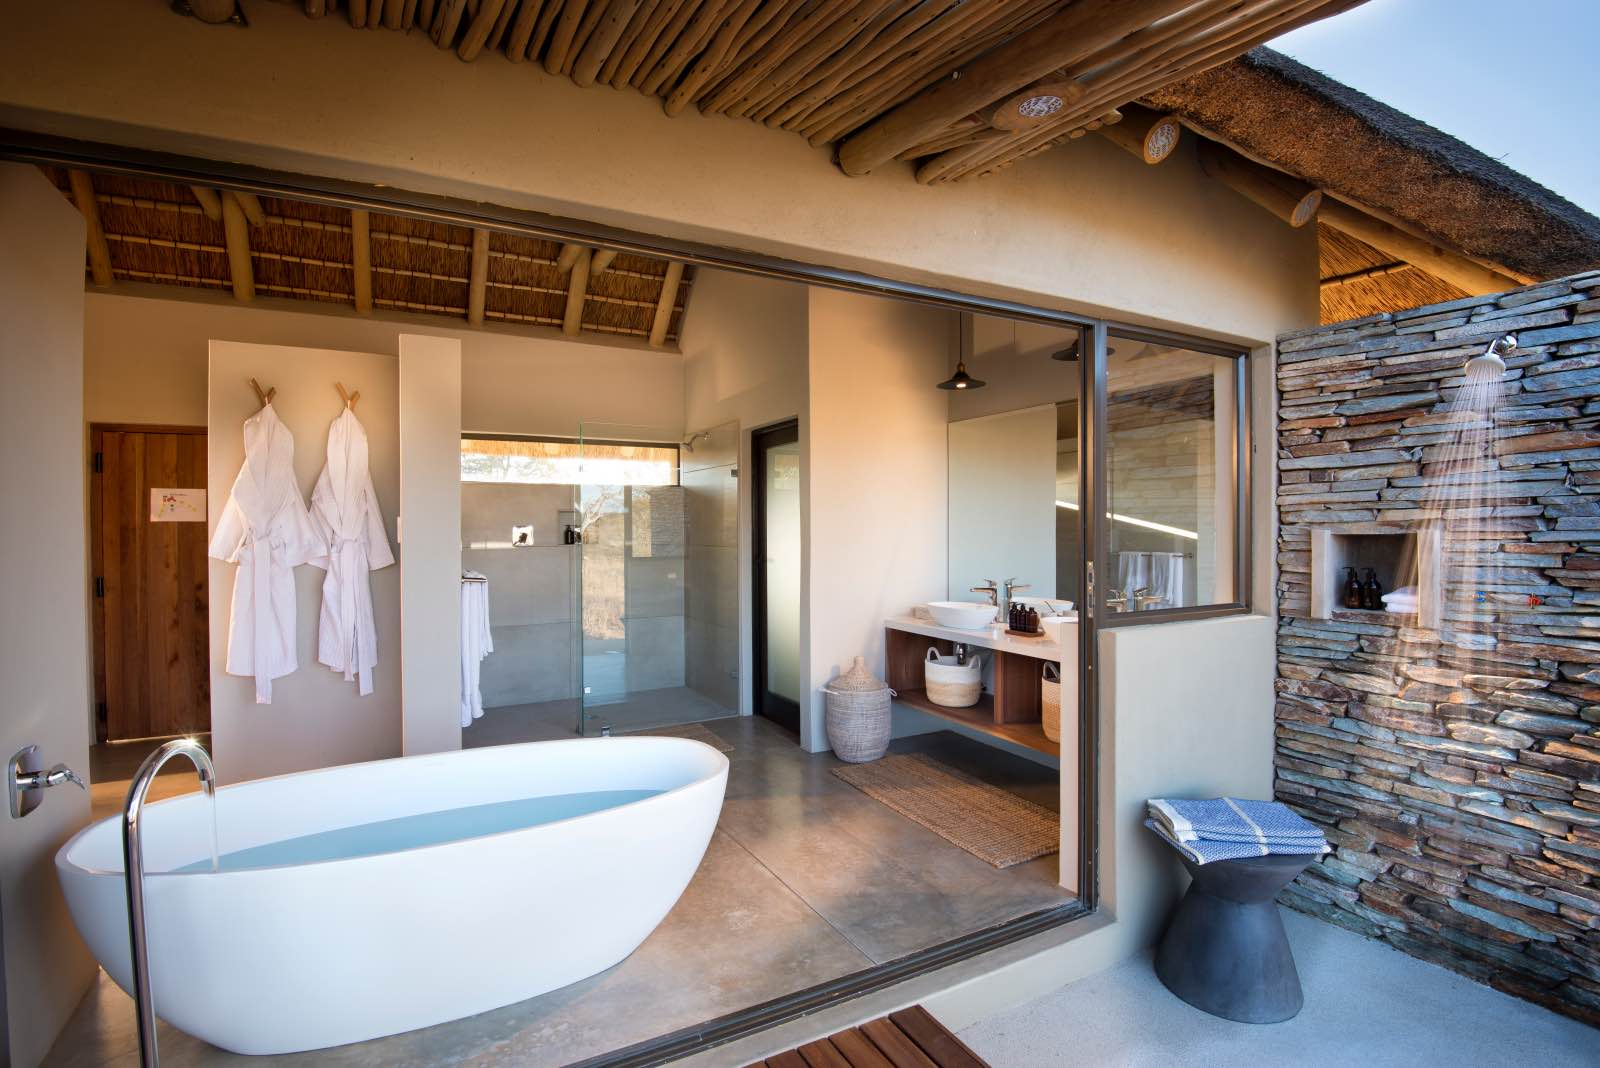 Rockfig en suite bathroom with indoor and outdoor shower and bath tub with a view